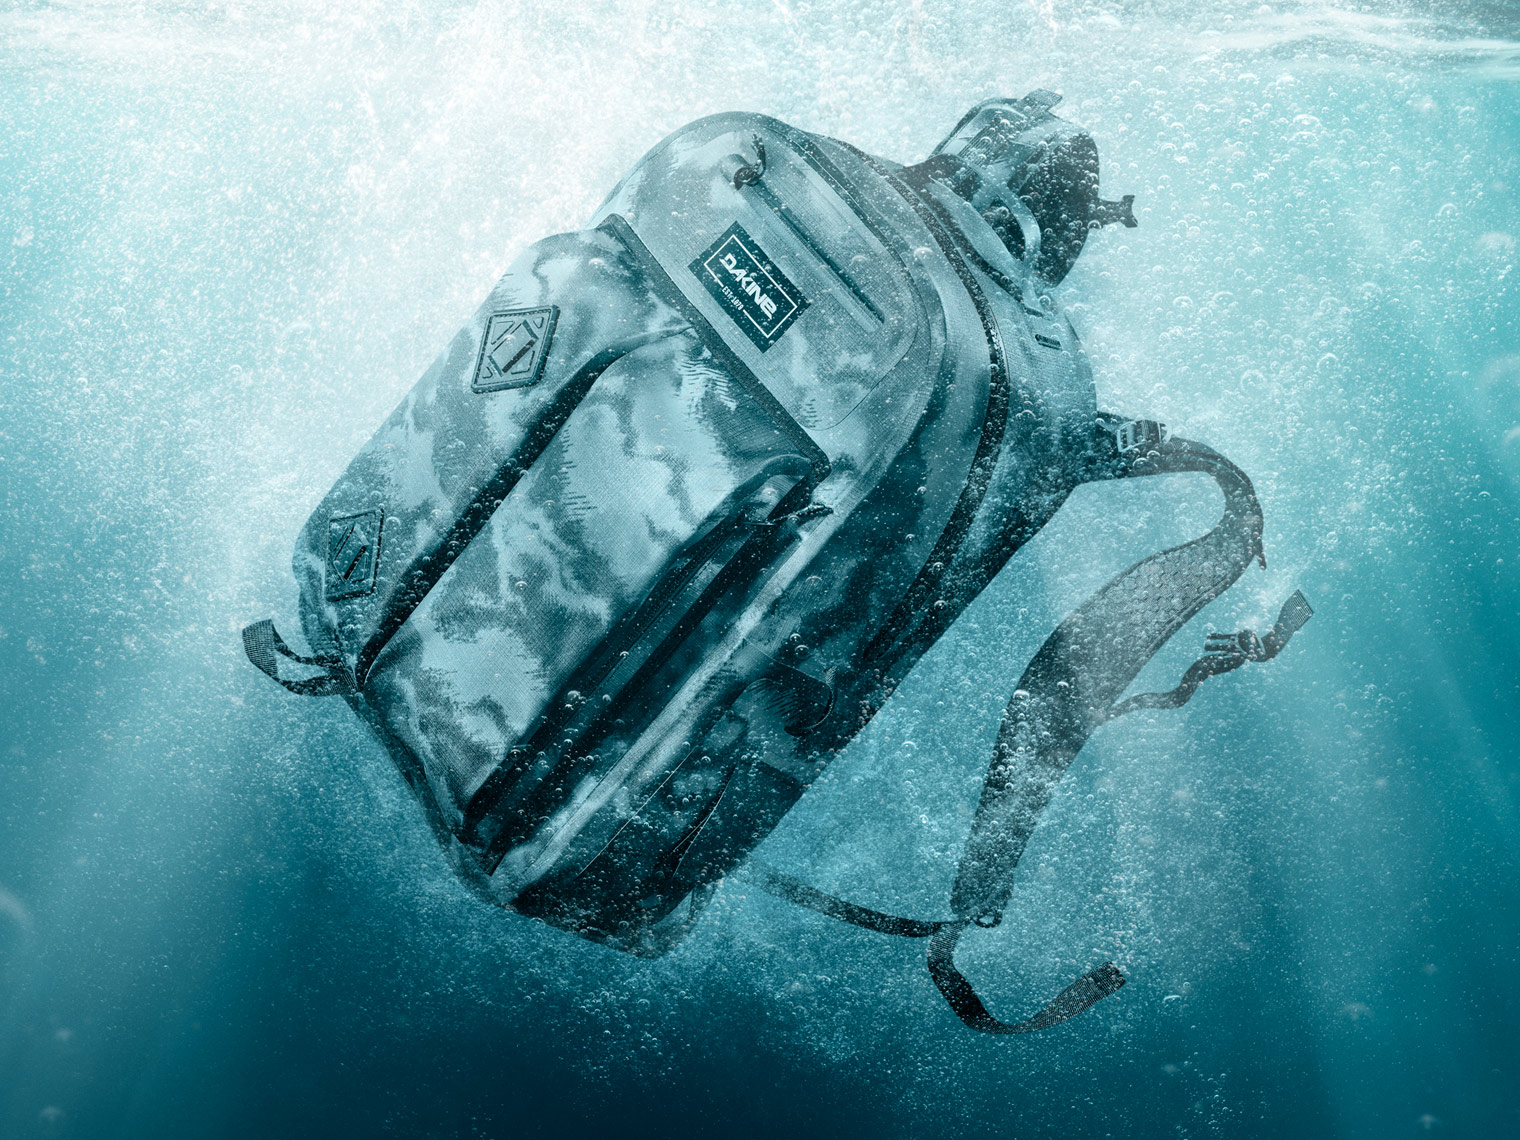 dakine-hydroseal-backpack-splashing-underwater-2